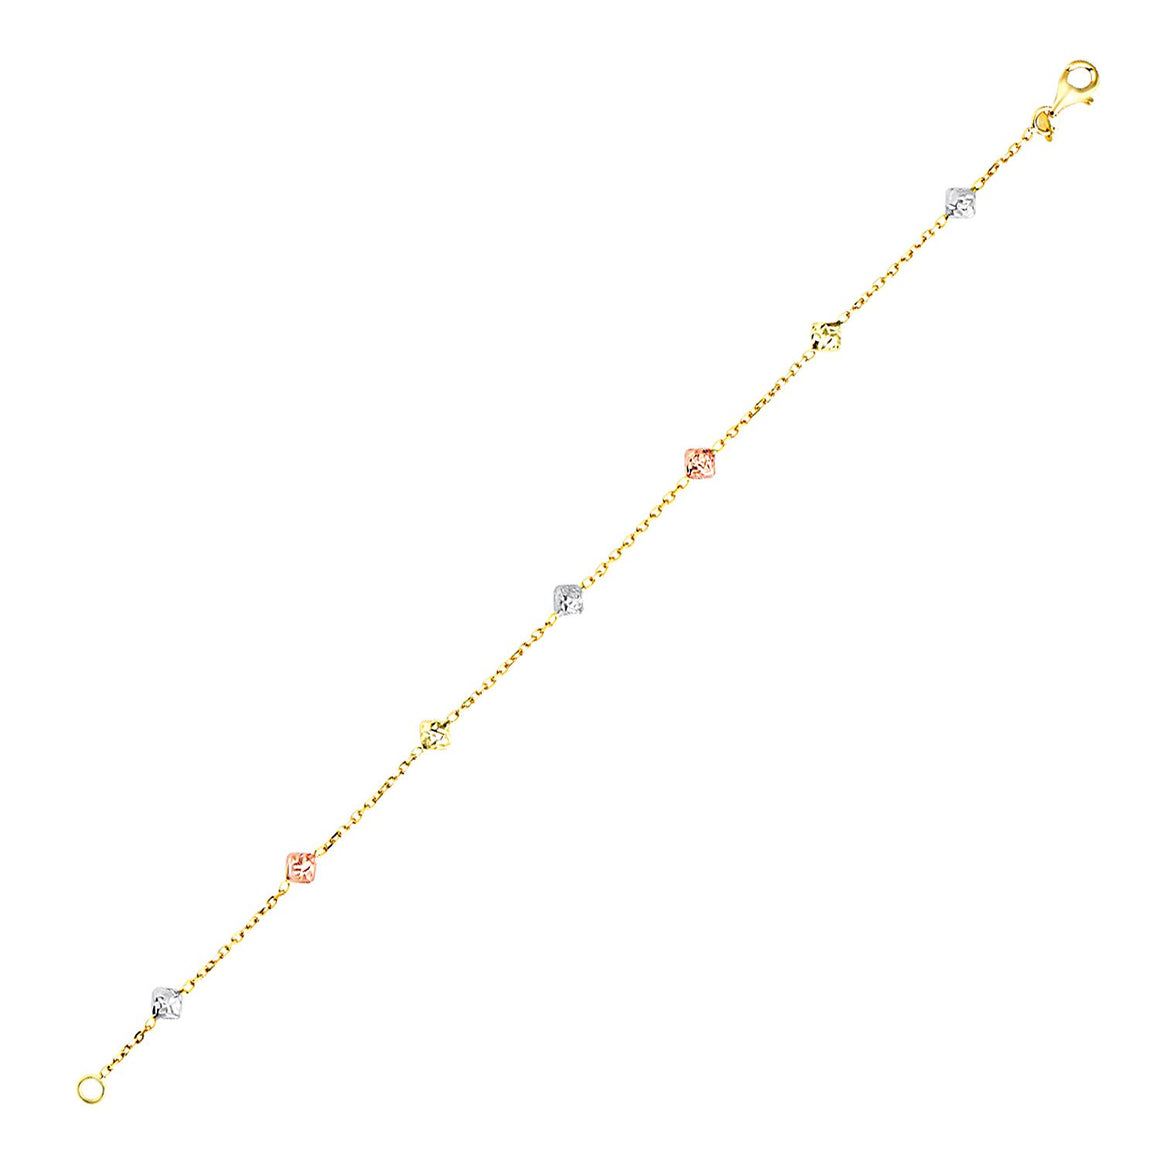 14k Tri-Color Gold Bracelet with Diamond Shape Faceted Style Stations